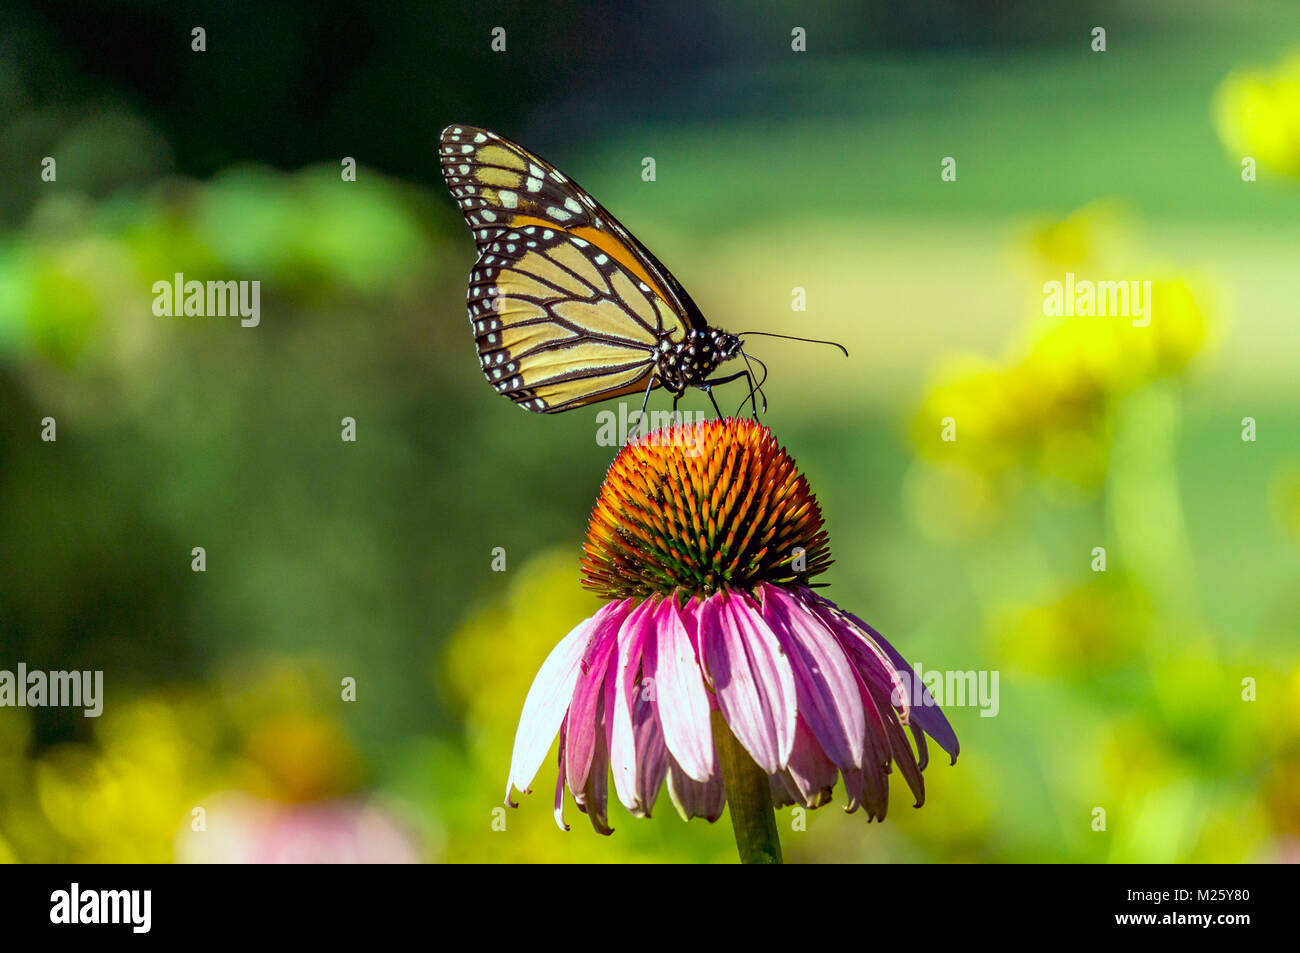 monarch butterfly Danaus plexippus is a milkweed butterfly (subfamily Danainae) in the family Nymphalidae - Stock Image